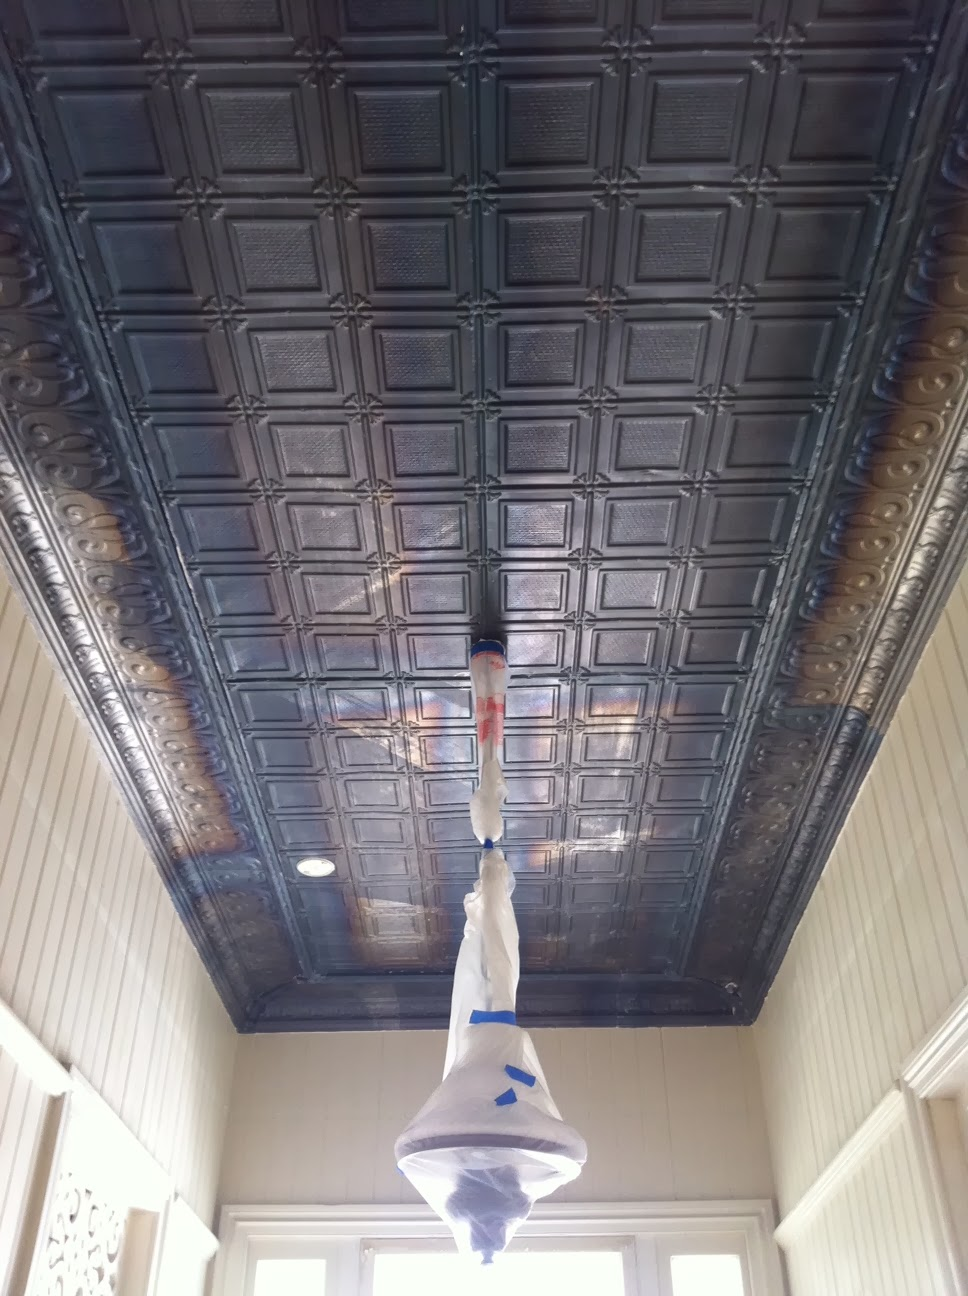 Weu0027d Love To Try The Soda Blasting On Our Ceilings And I Rang A Few  Providers To Get Some Insights. Unfortunately, Because Ours Are Painted In  Lead Paint, ...